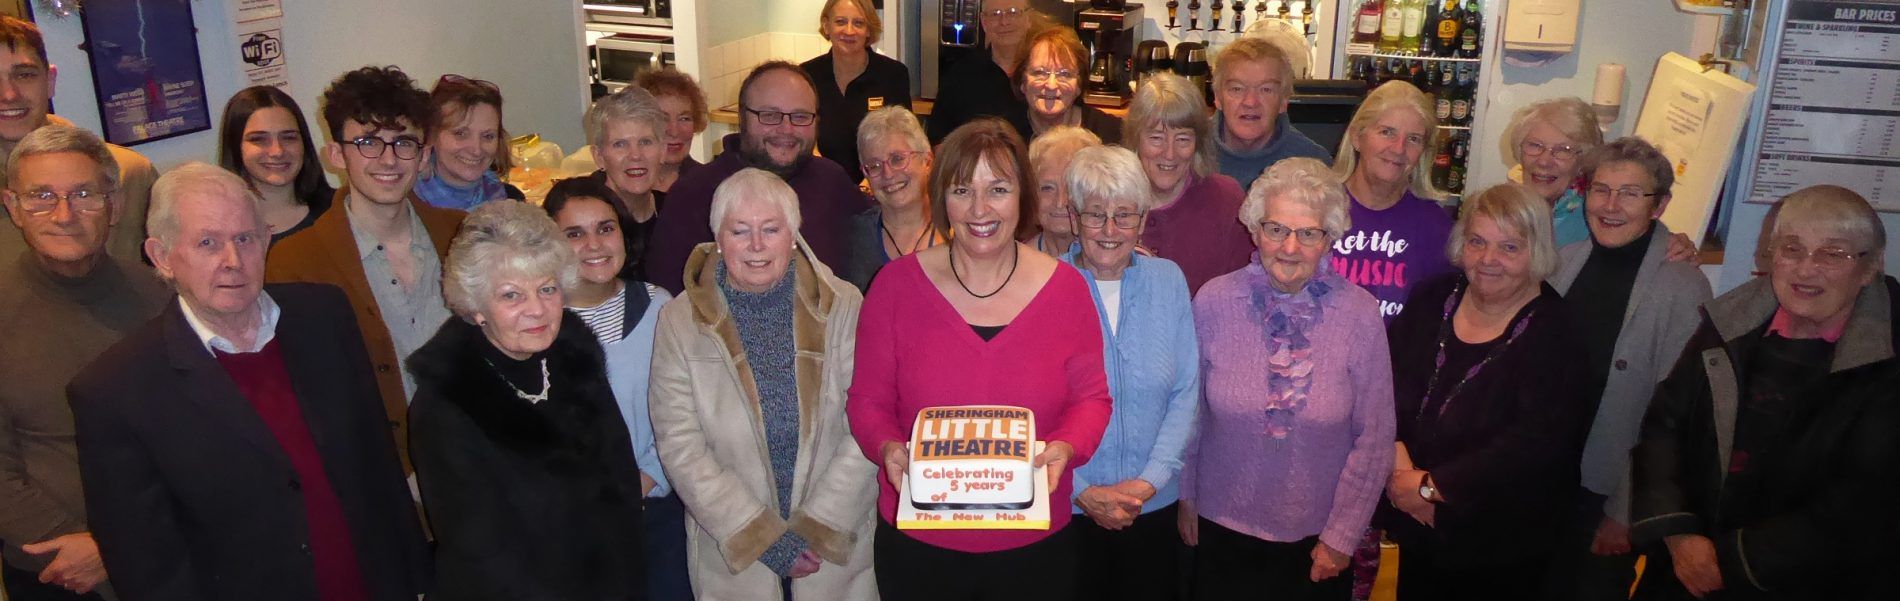 Theatre Friends with the cafe bar's 5th anniversary cake held by theatre director Debbie Thompson. Picture by Richard Batson